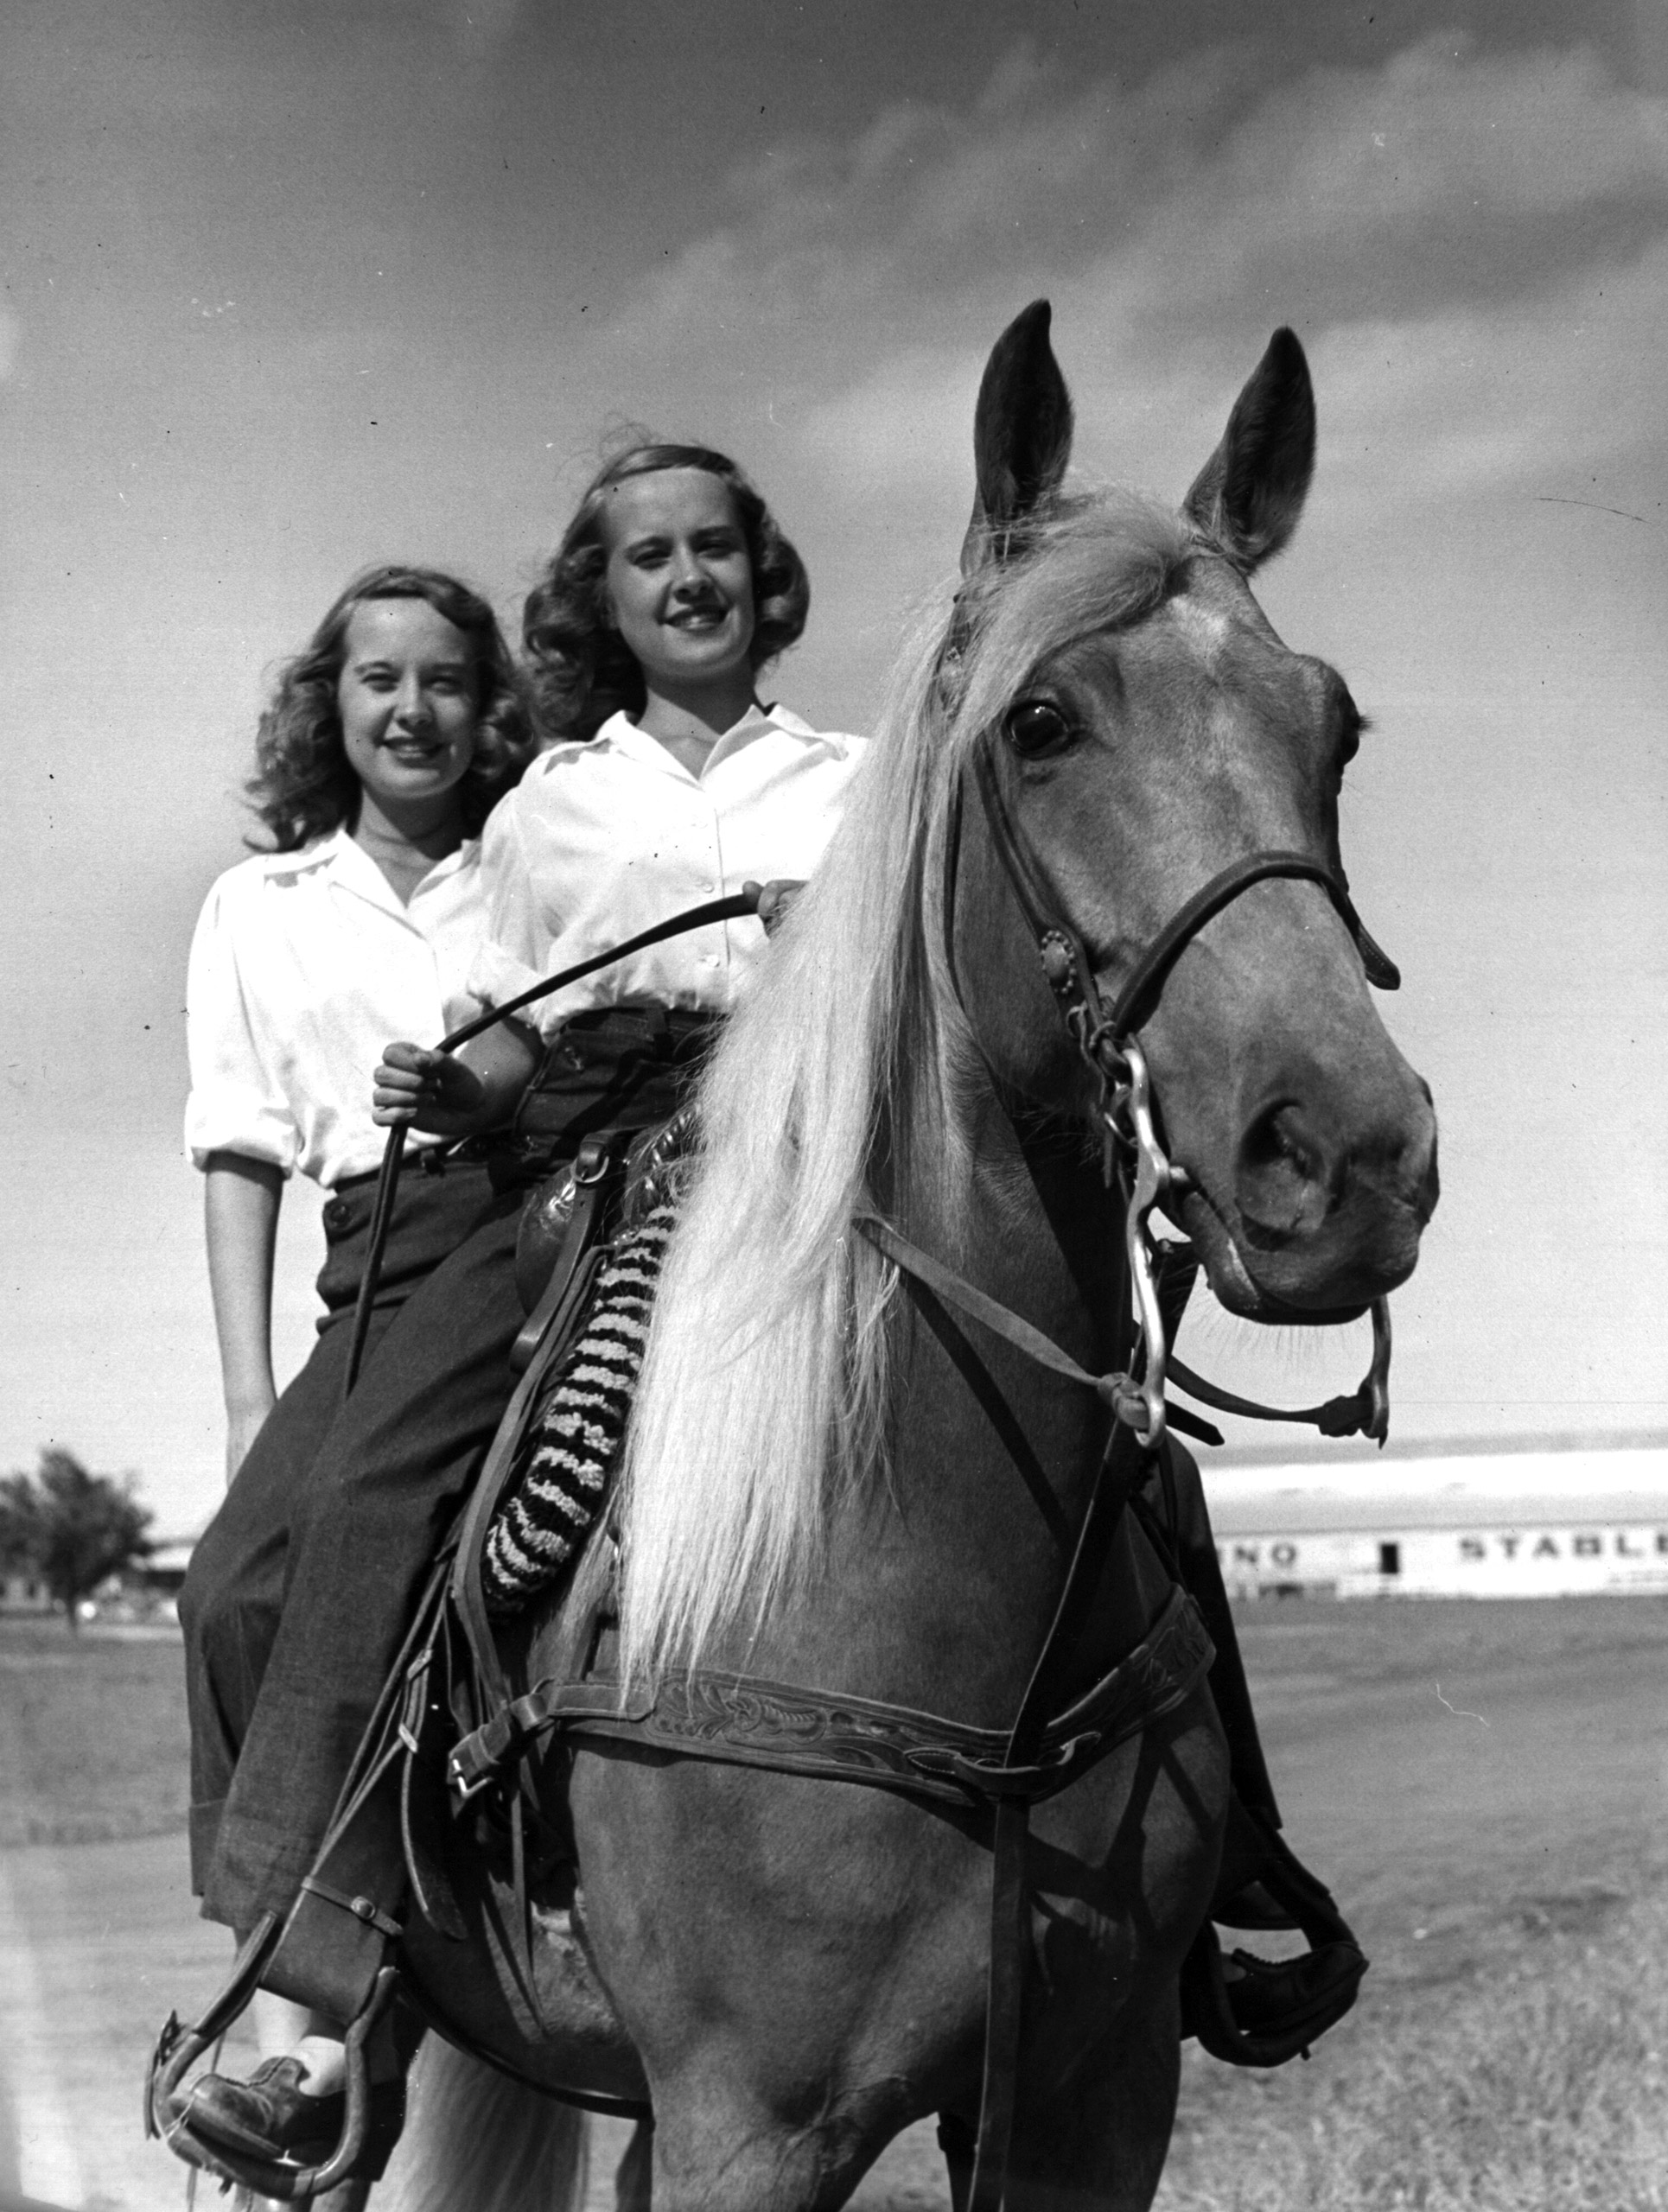 Identical twins Barbara and Betty Bounds ride a horse together.